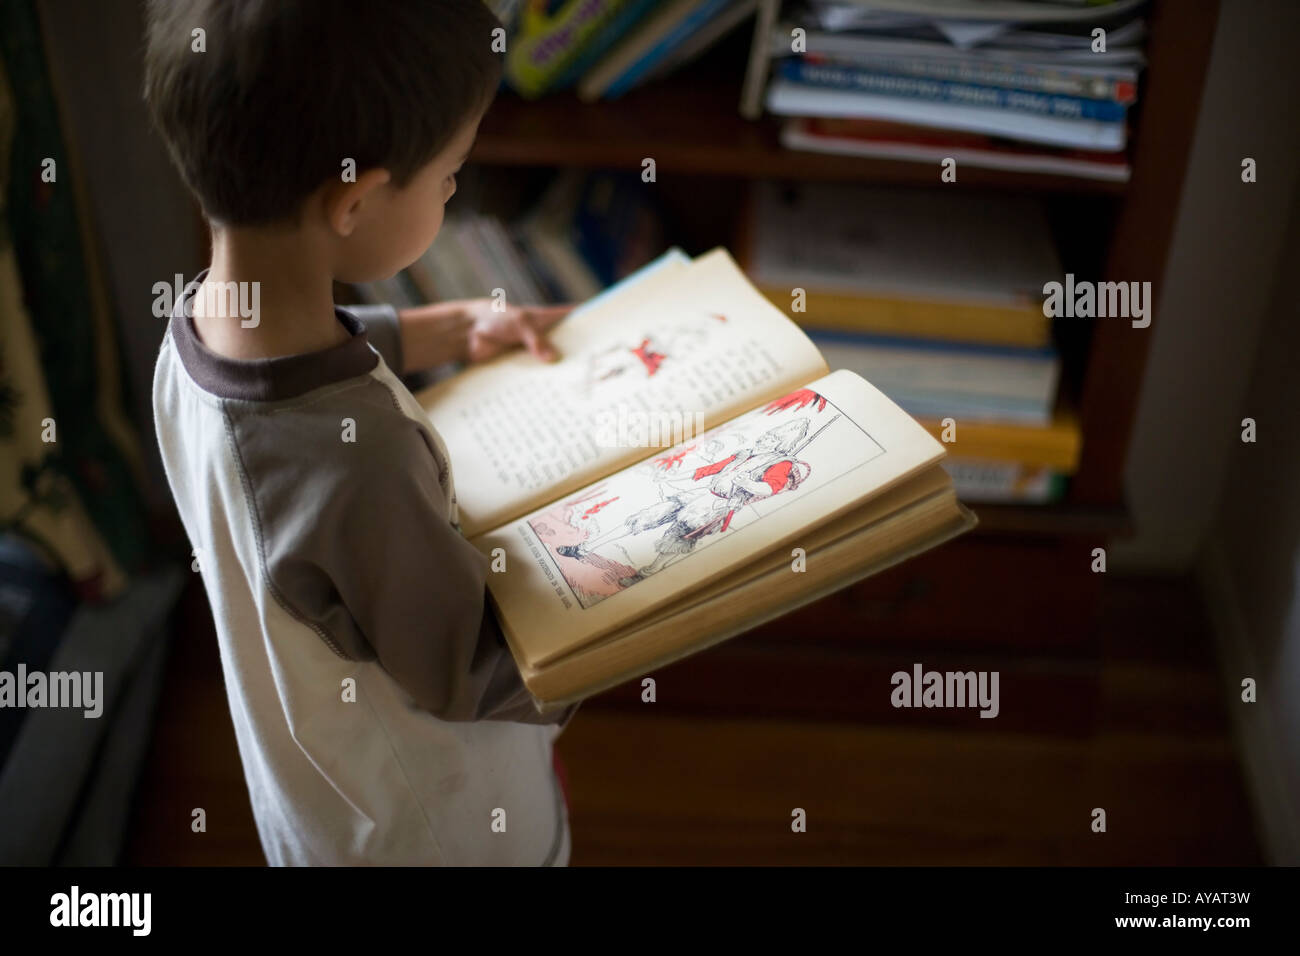 Boy aged six years reads book of Fairy Tales and Nursery Rhymes - Stock Image